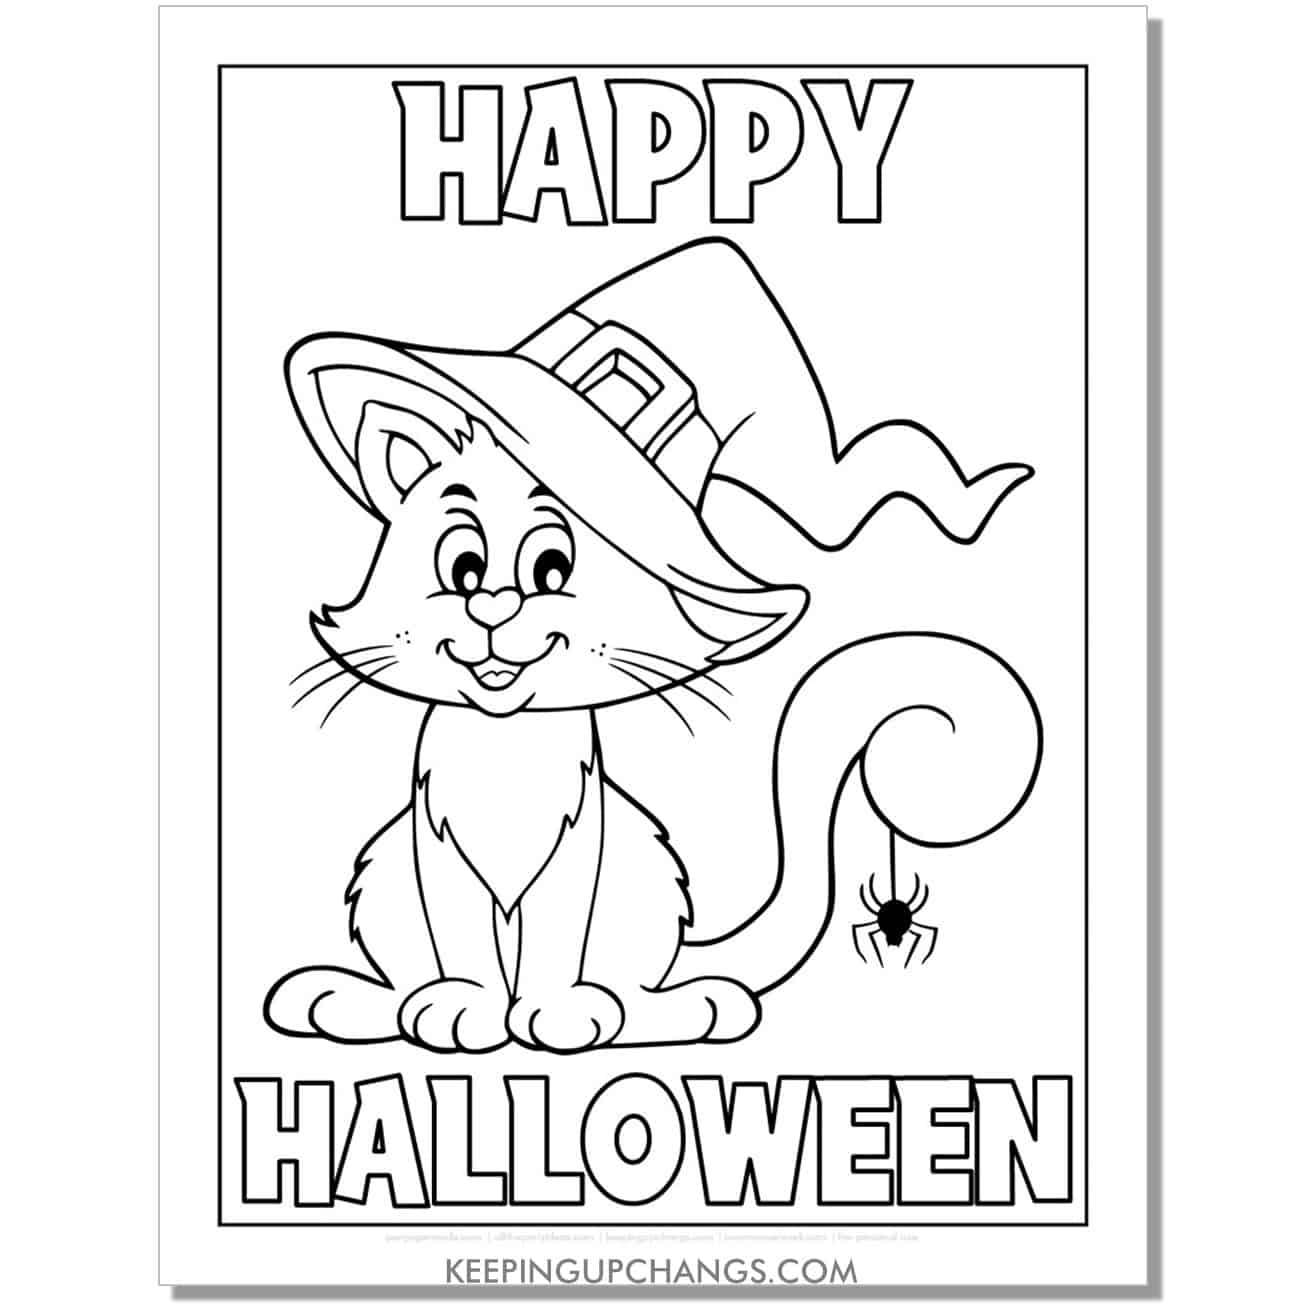 happy halloween cat with witch hat coloring page.